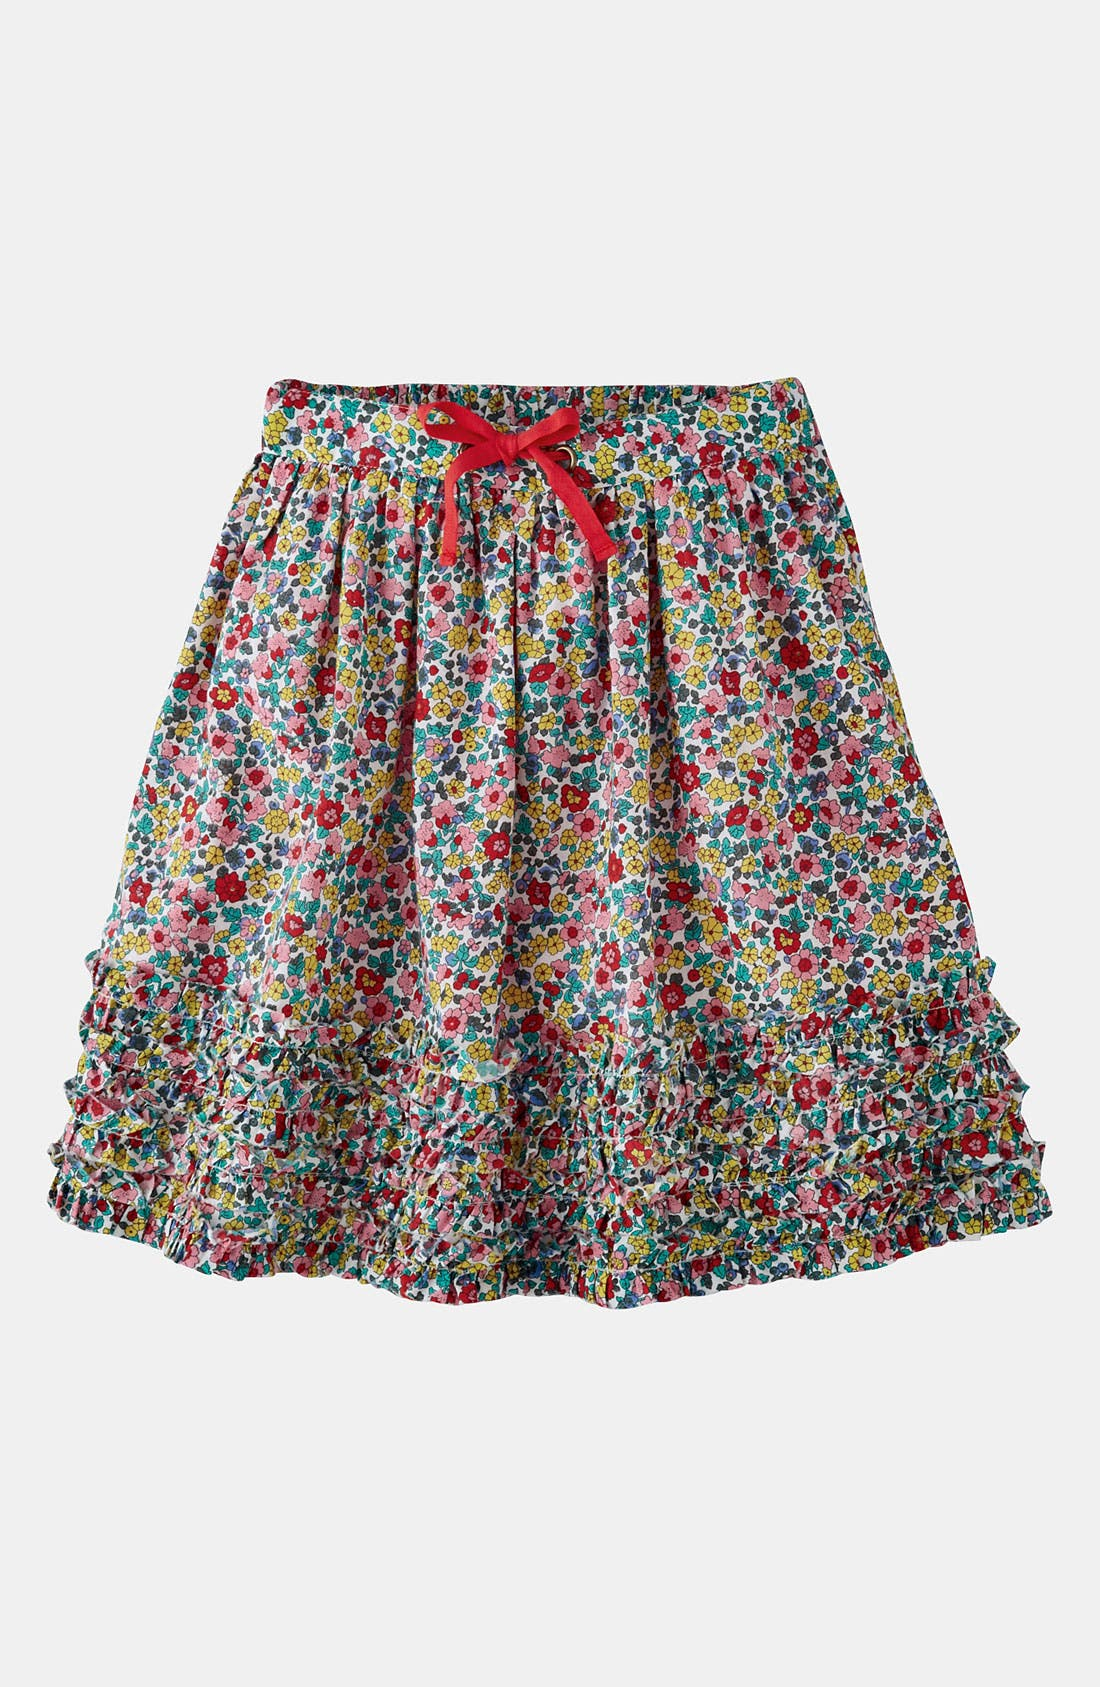 Alternate Image 1 Selected - Mini Boden Ruffle Hem Skirt (Little Girls & Big Girls)